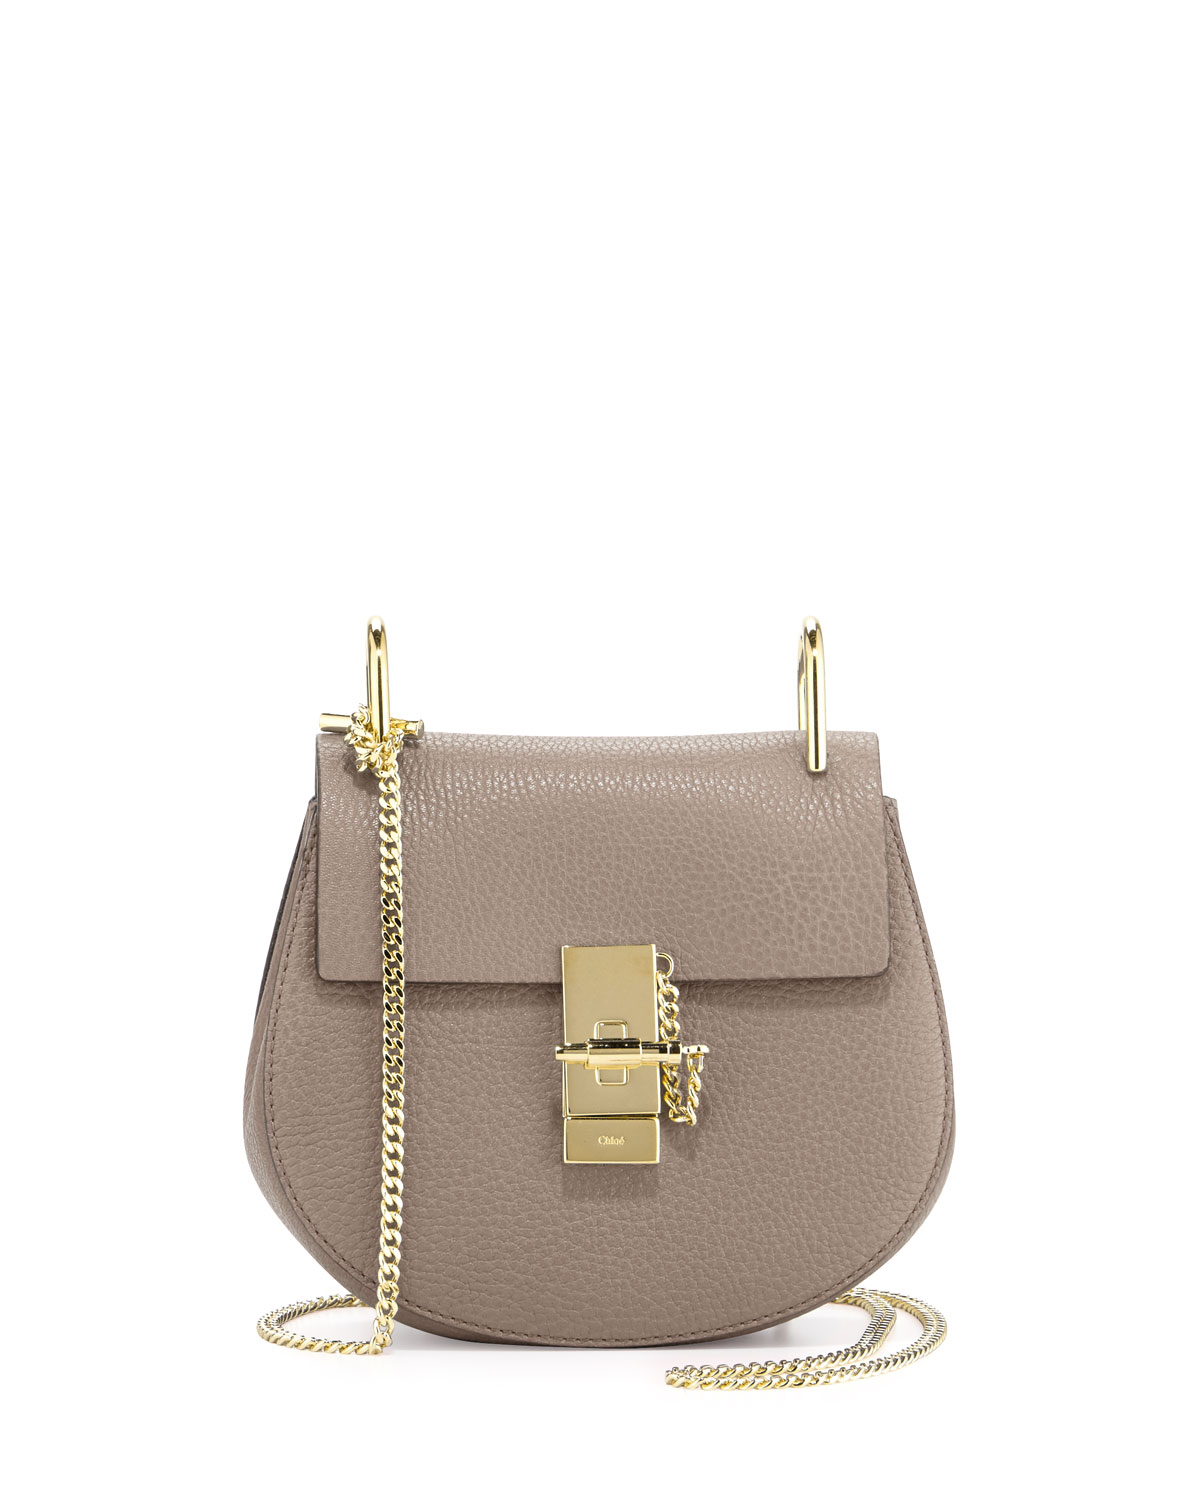 46d0206b6747 Chloe Drew Mini Lambskin Shoulder Bag